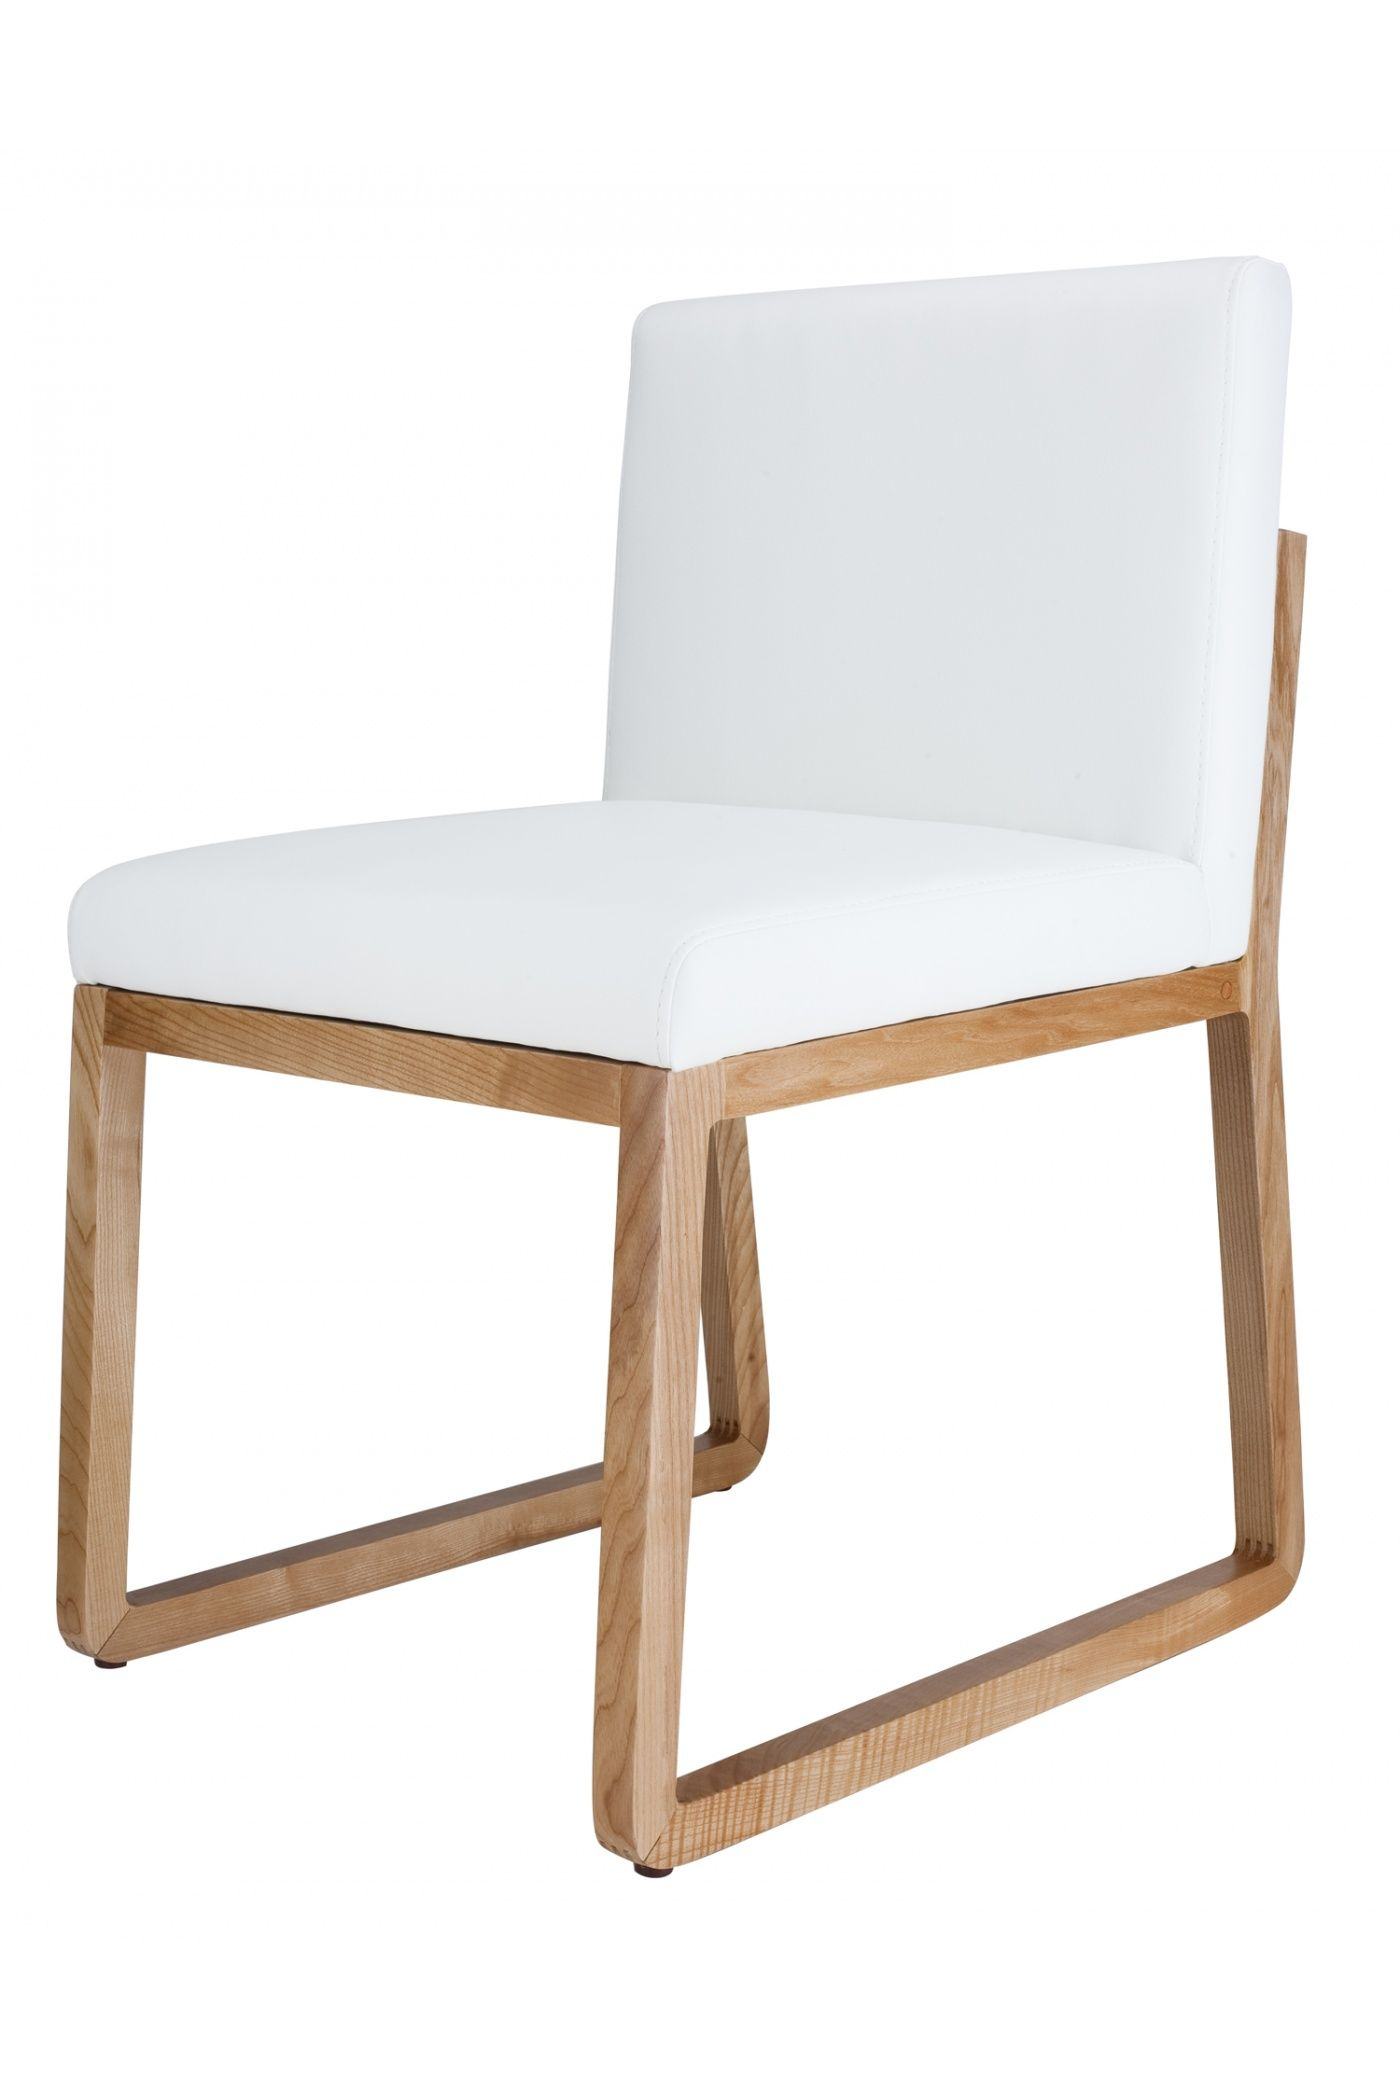 Carrera Side Chair Beech on White Industry West